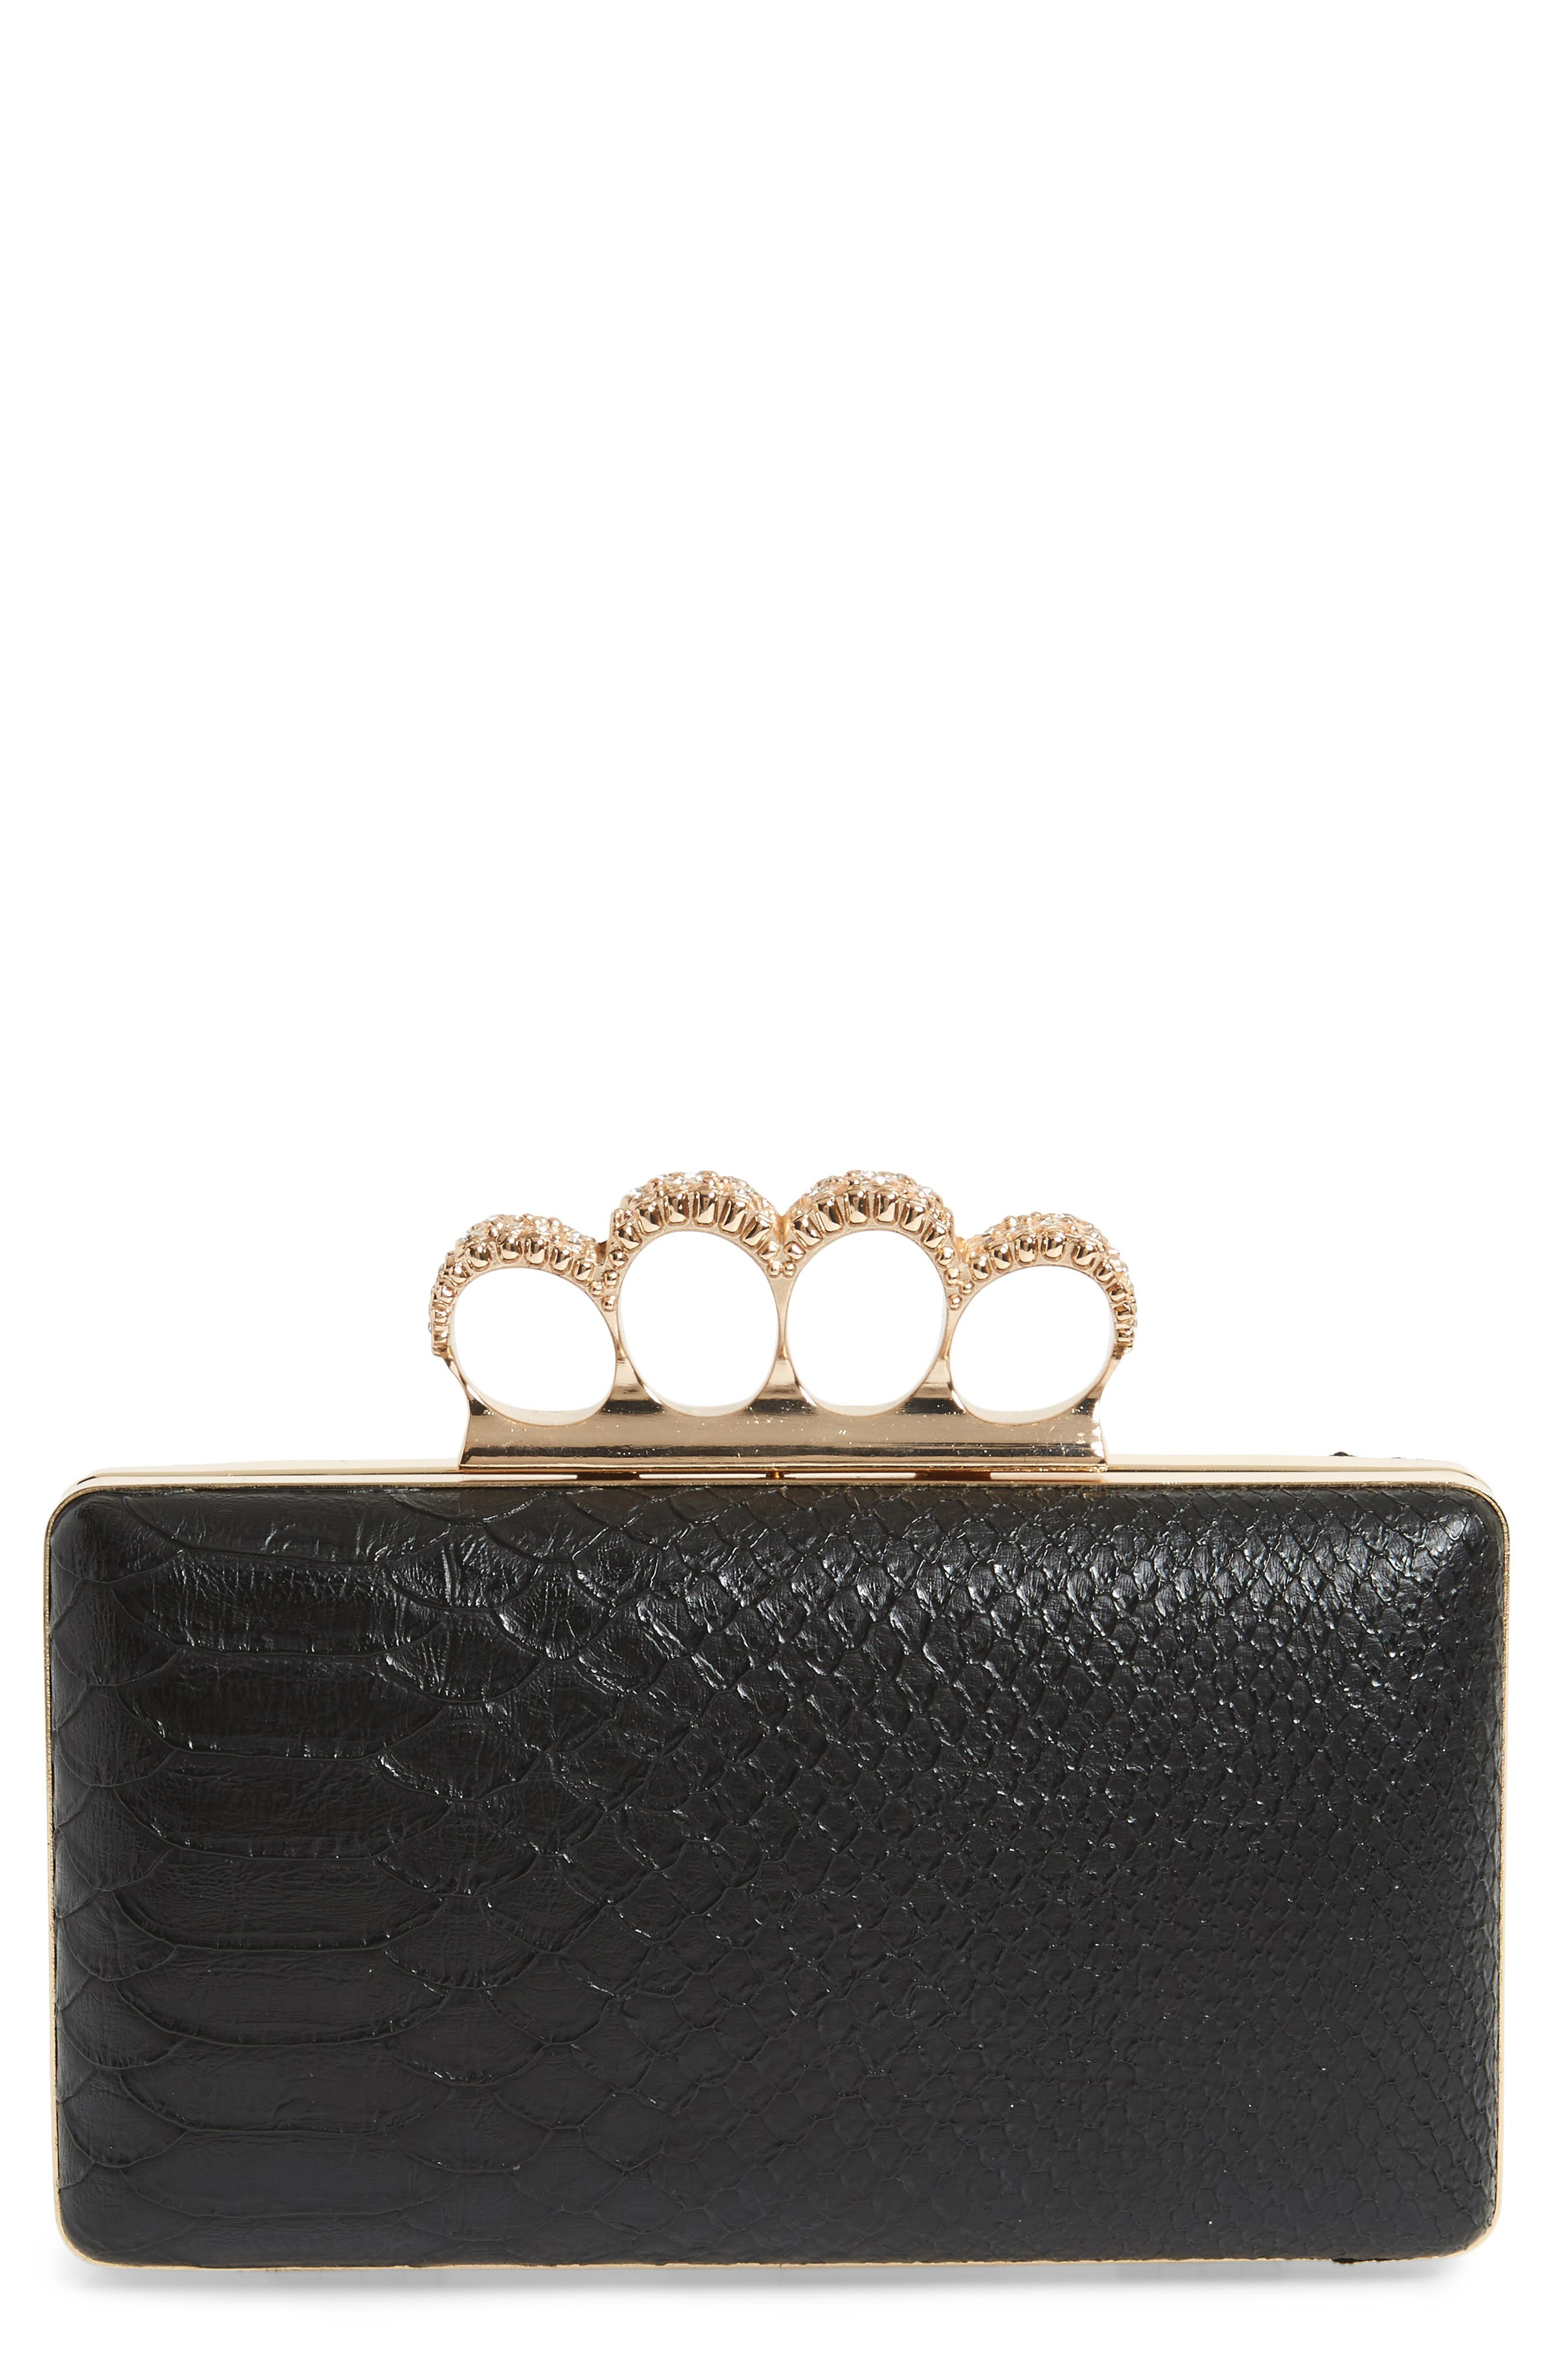 Knuckle Box Clutch,                         Main,                         color, Gold/ Black